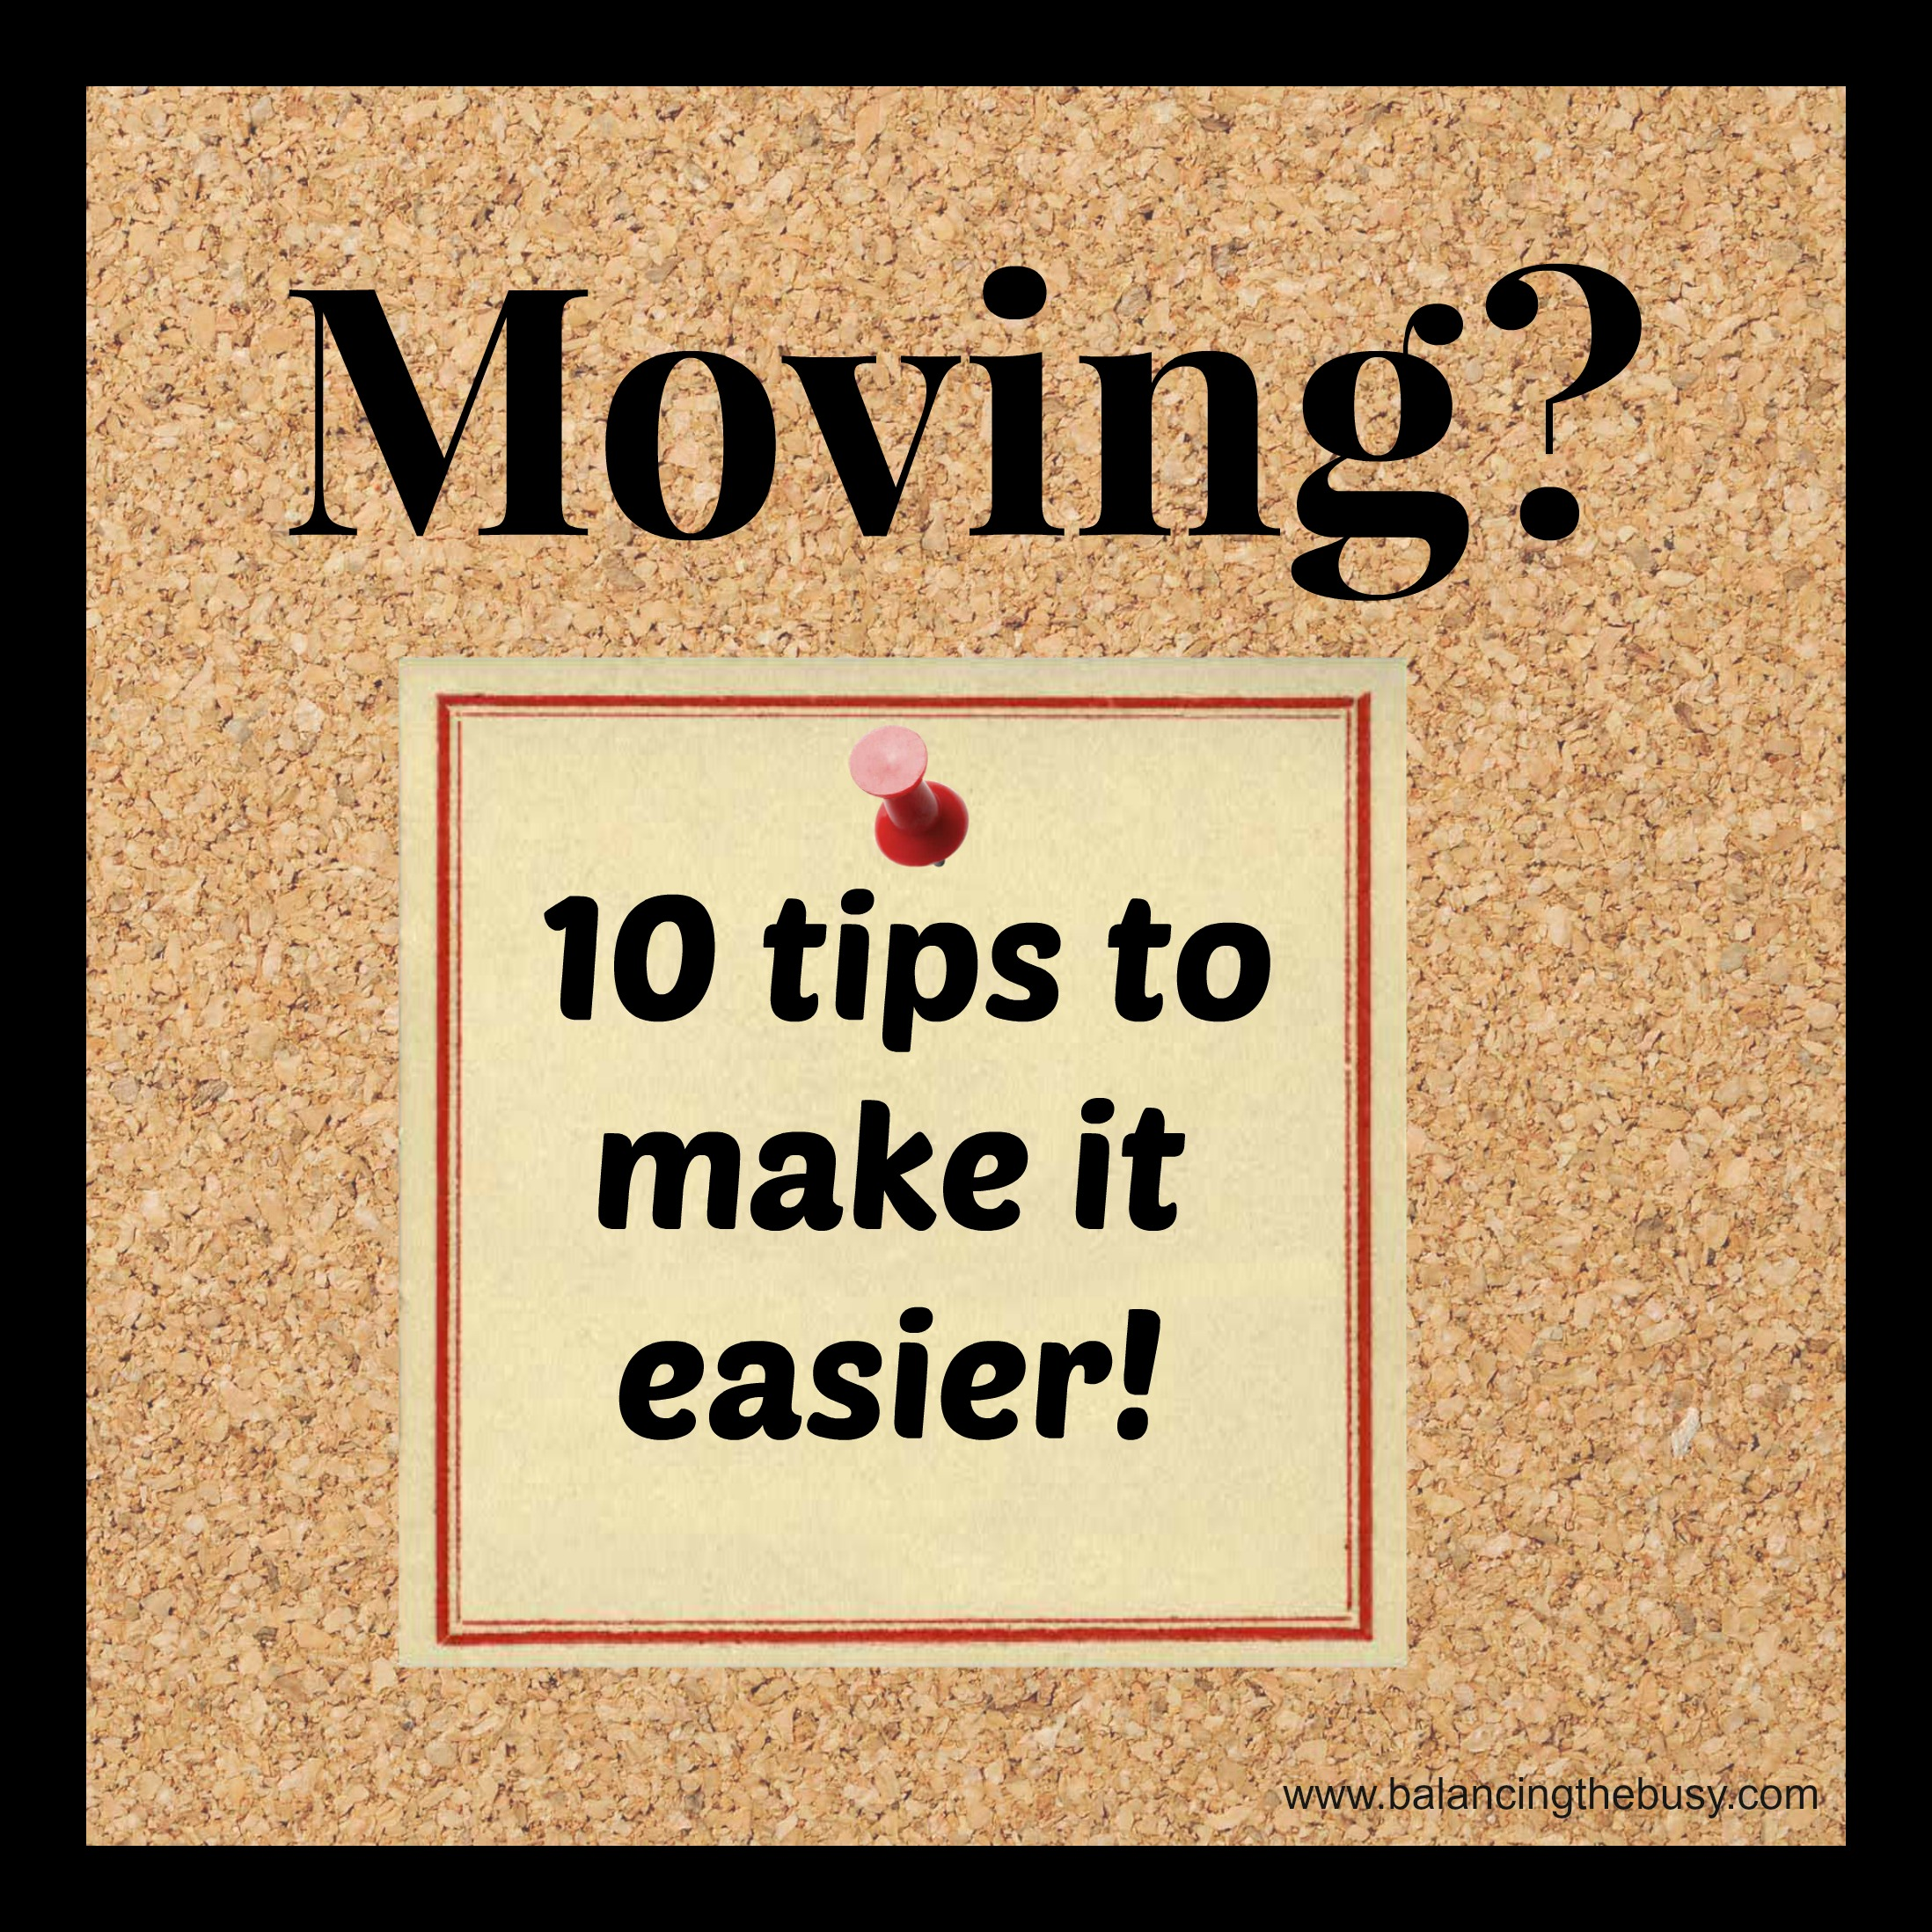 Making Moving Easier: Moving? 10 Tips To Make It Easier » Balancing The Busy